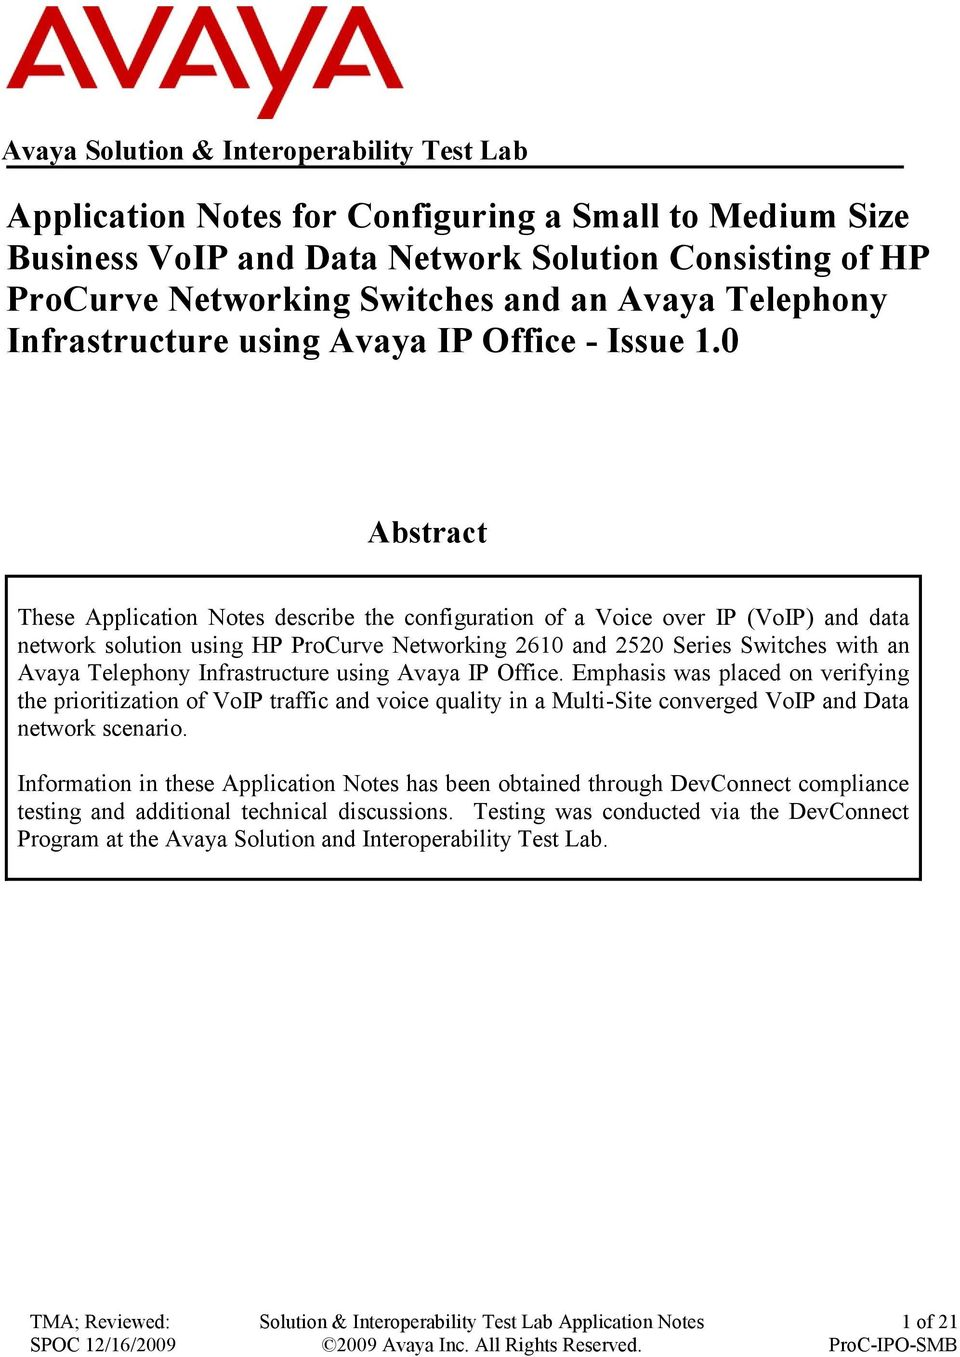 0 Abstract These Application Notes describe the configuration of a Voice over IP (VoIP) and data network solution using HP ProCurve Networking 2610 and 2520 Series Switches with an Avaya Telephony